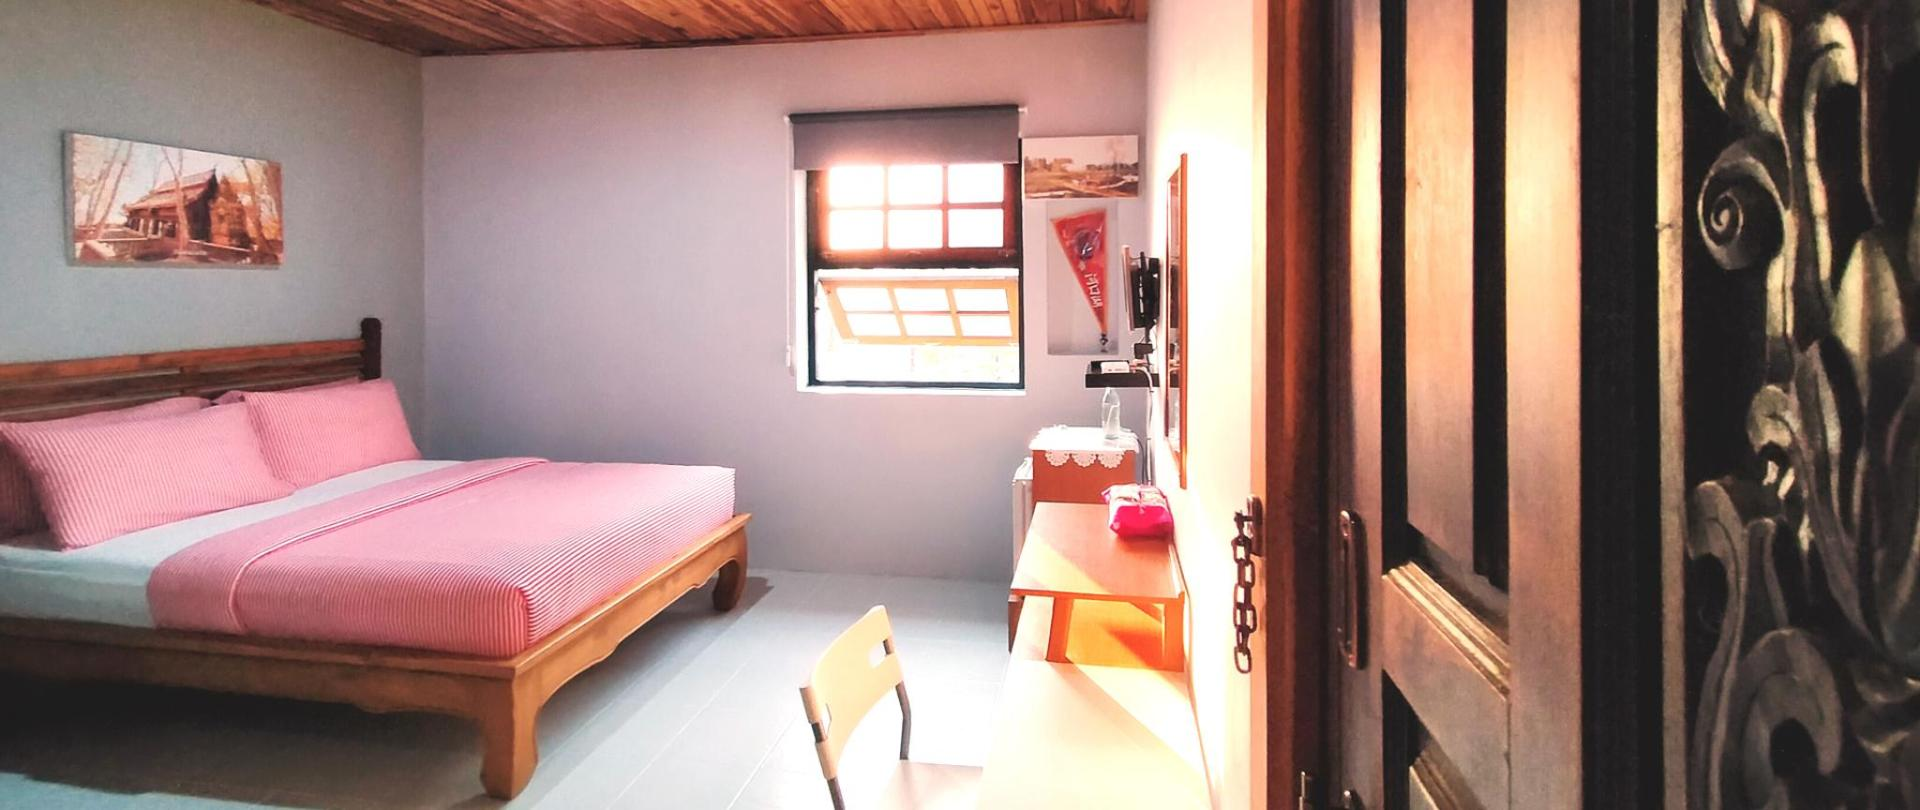 Standard-double-room-2 guests-queen-size-tv-refrigerator-work-desk-I-Ya-Guesthouse-Phayao.jpg